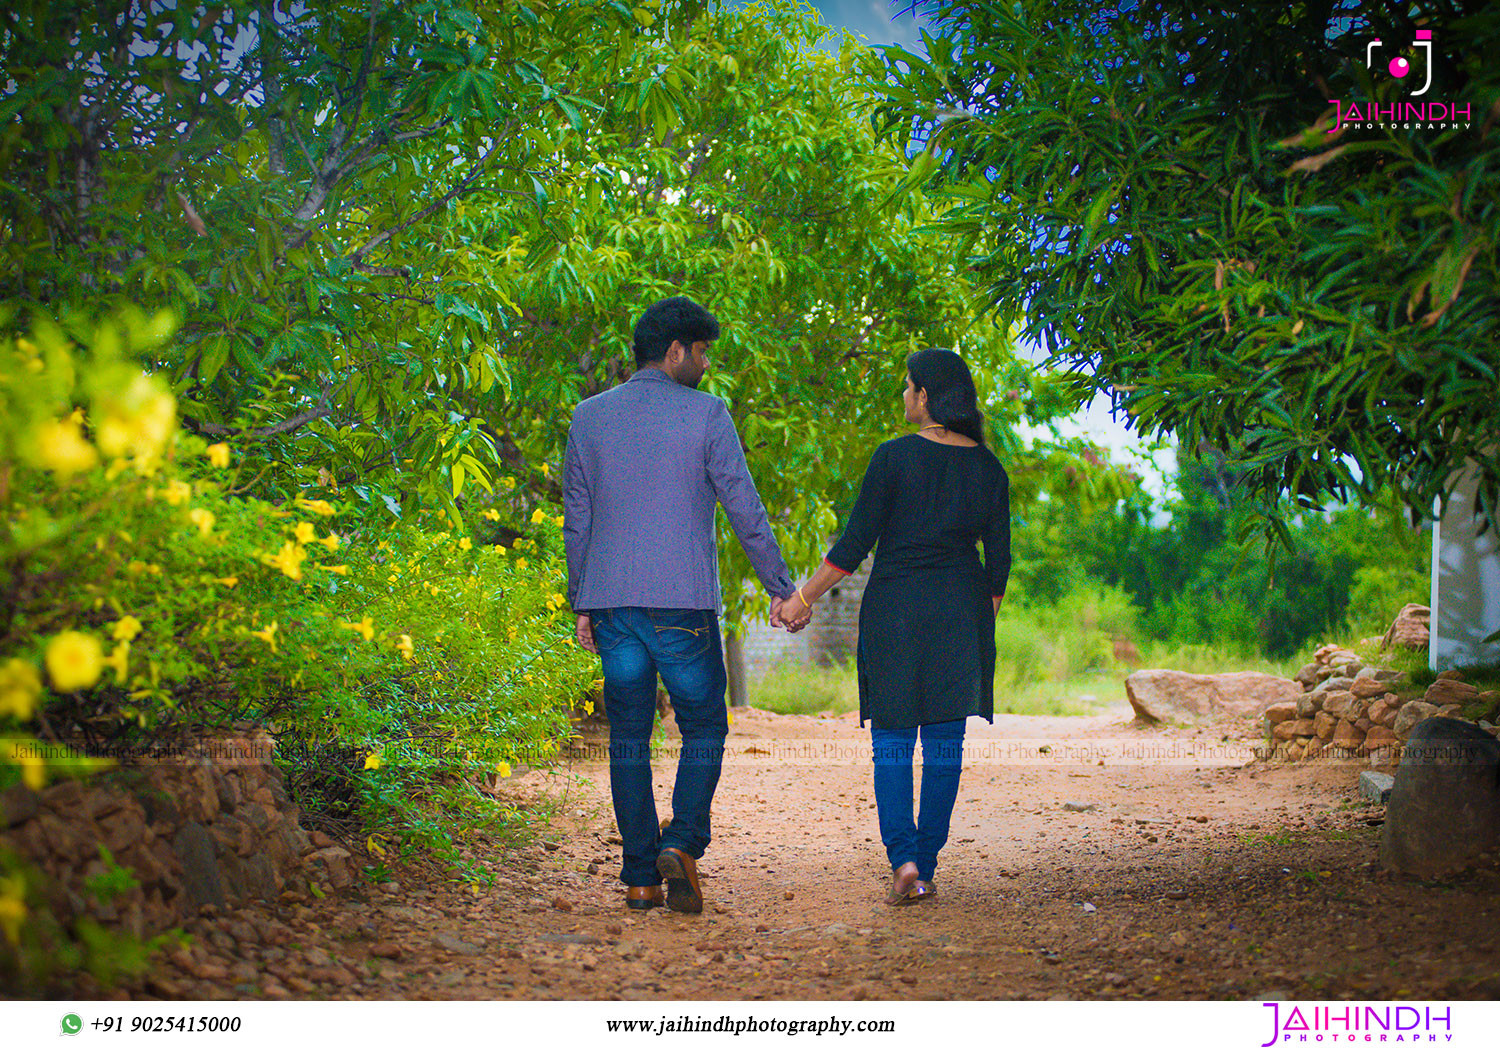 Candid Photographers In Sivagangai, Candid Wedding Photographers In Sivagangai, Creative Photographers In Sivagangai, Professional Wedding Photographers In Sivagangai